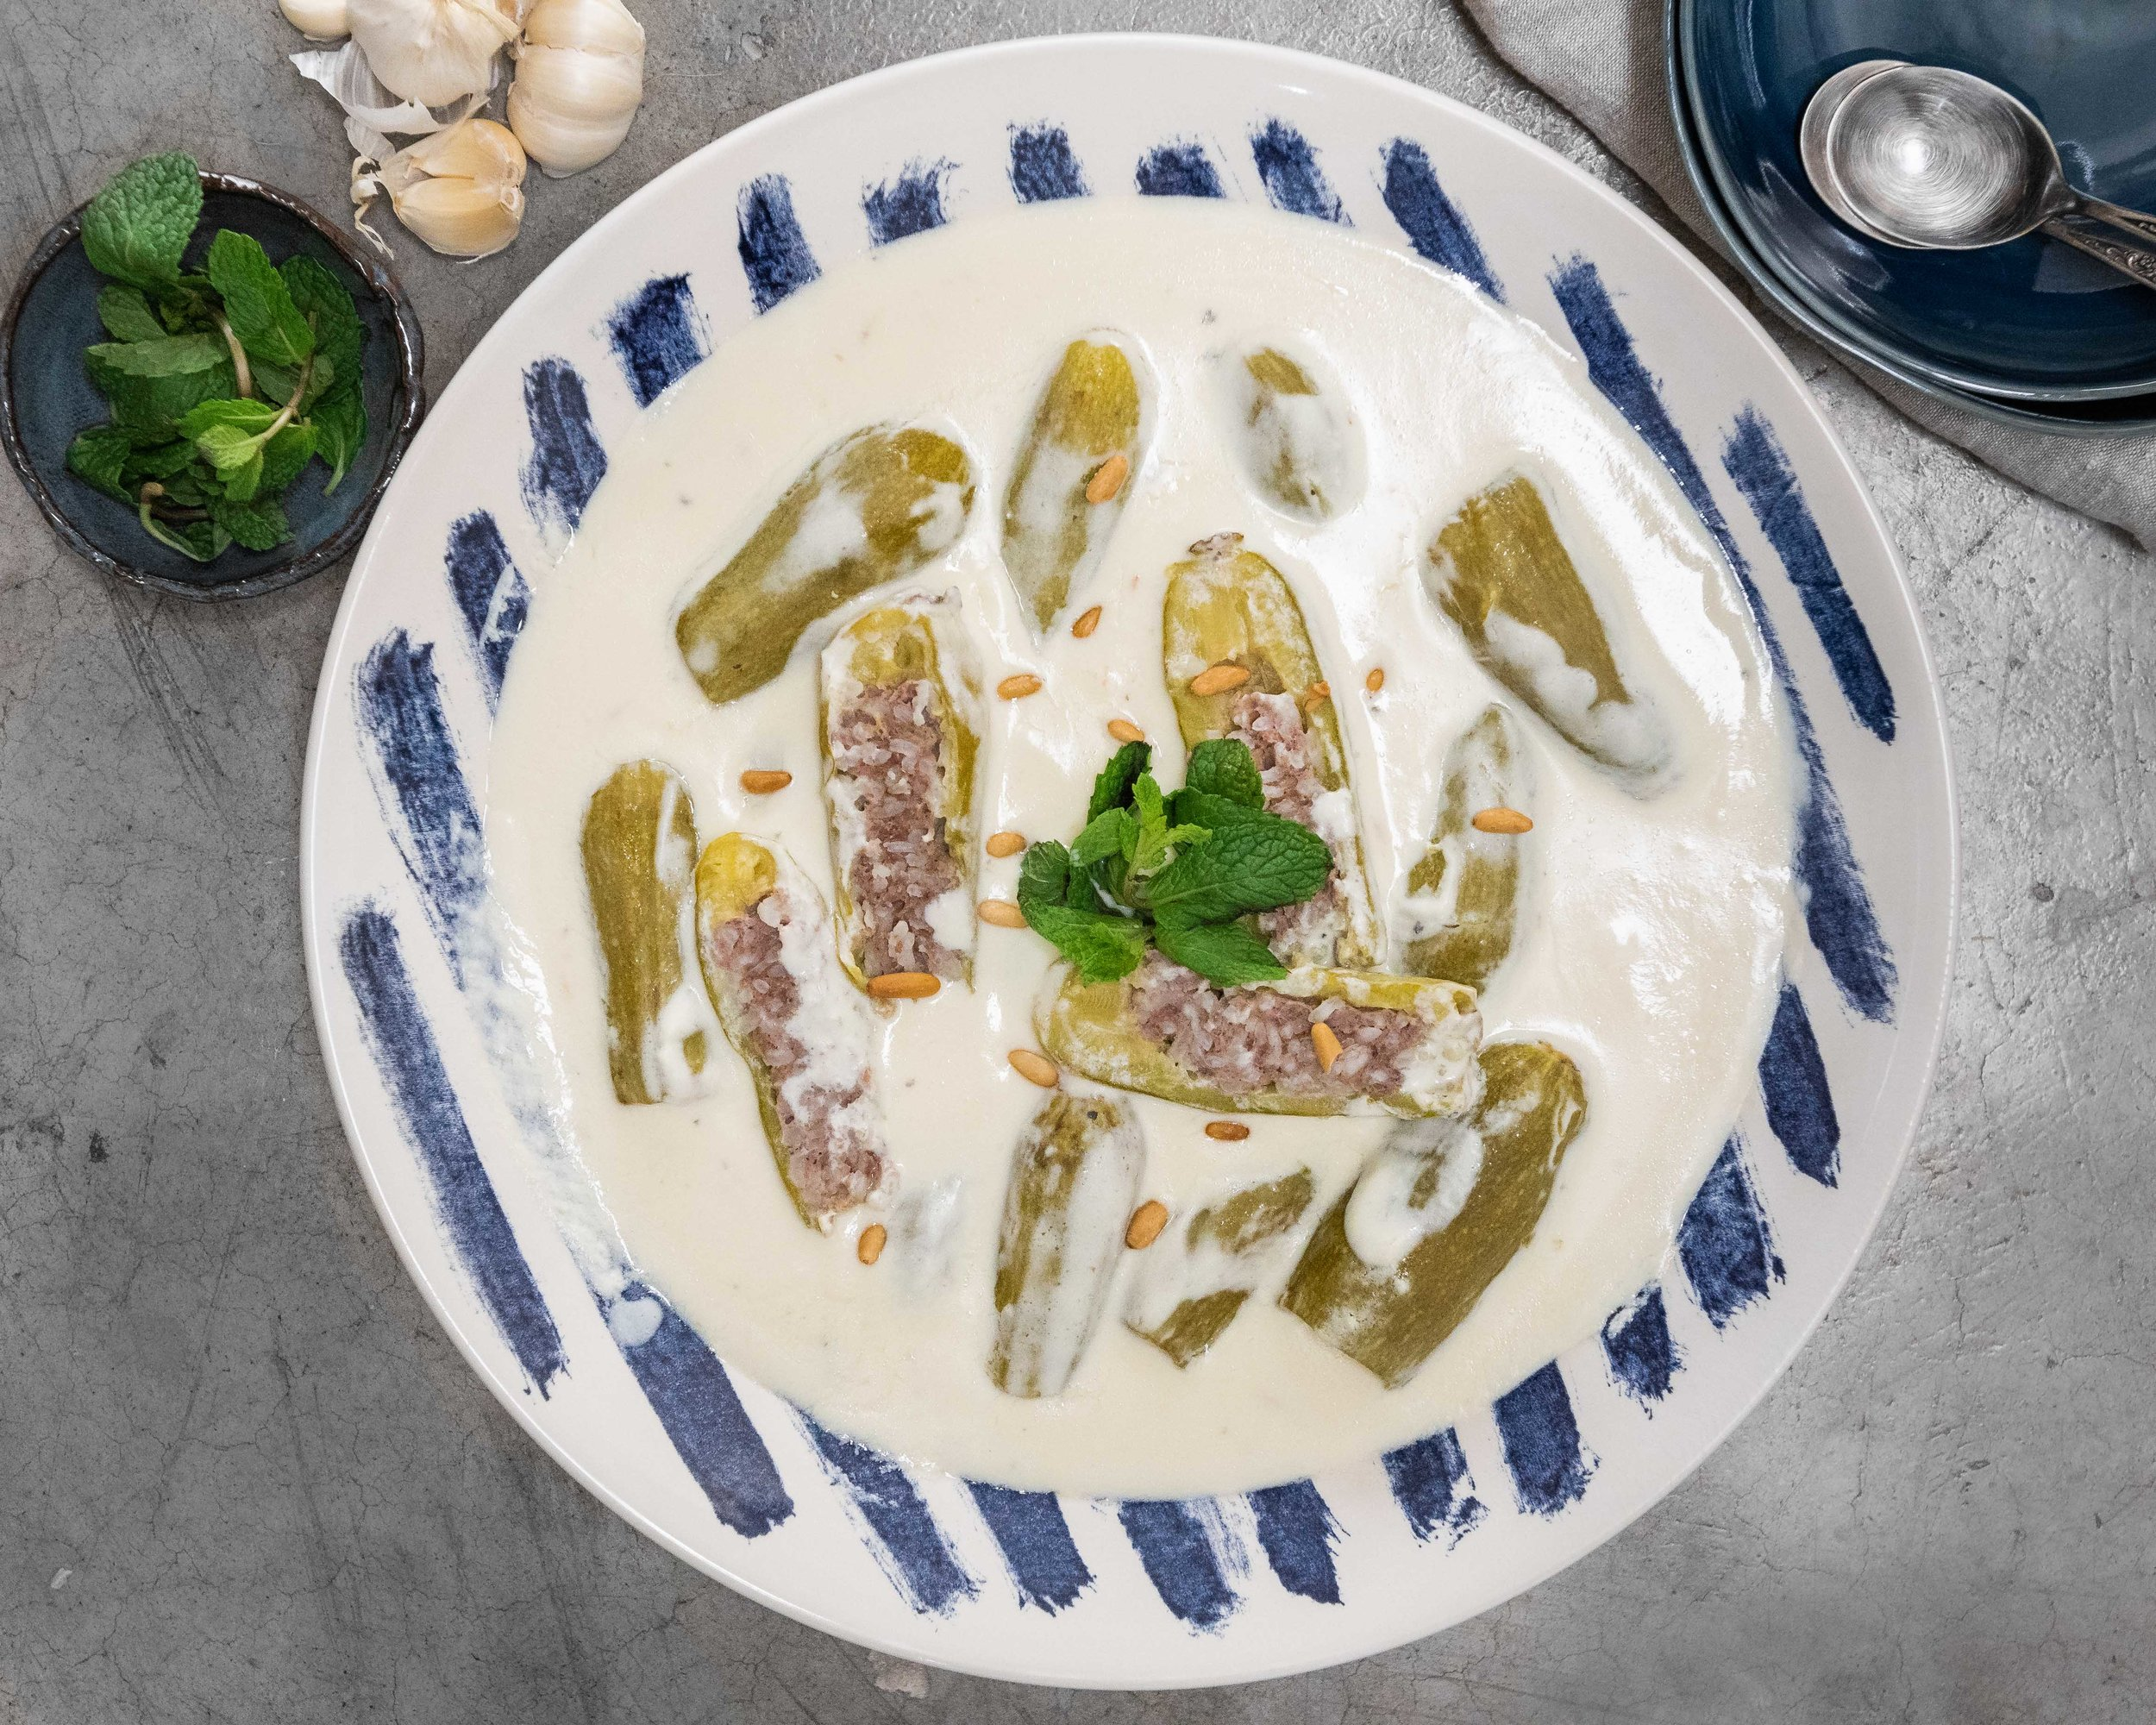 Kousa Bil Laban (Stuffed Squash in Yogurt Sauce)